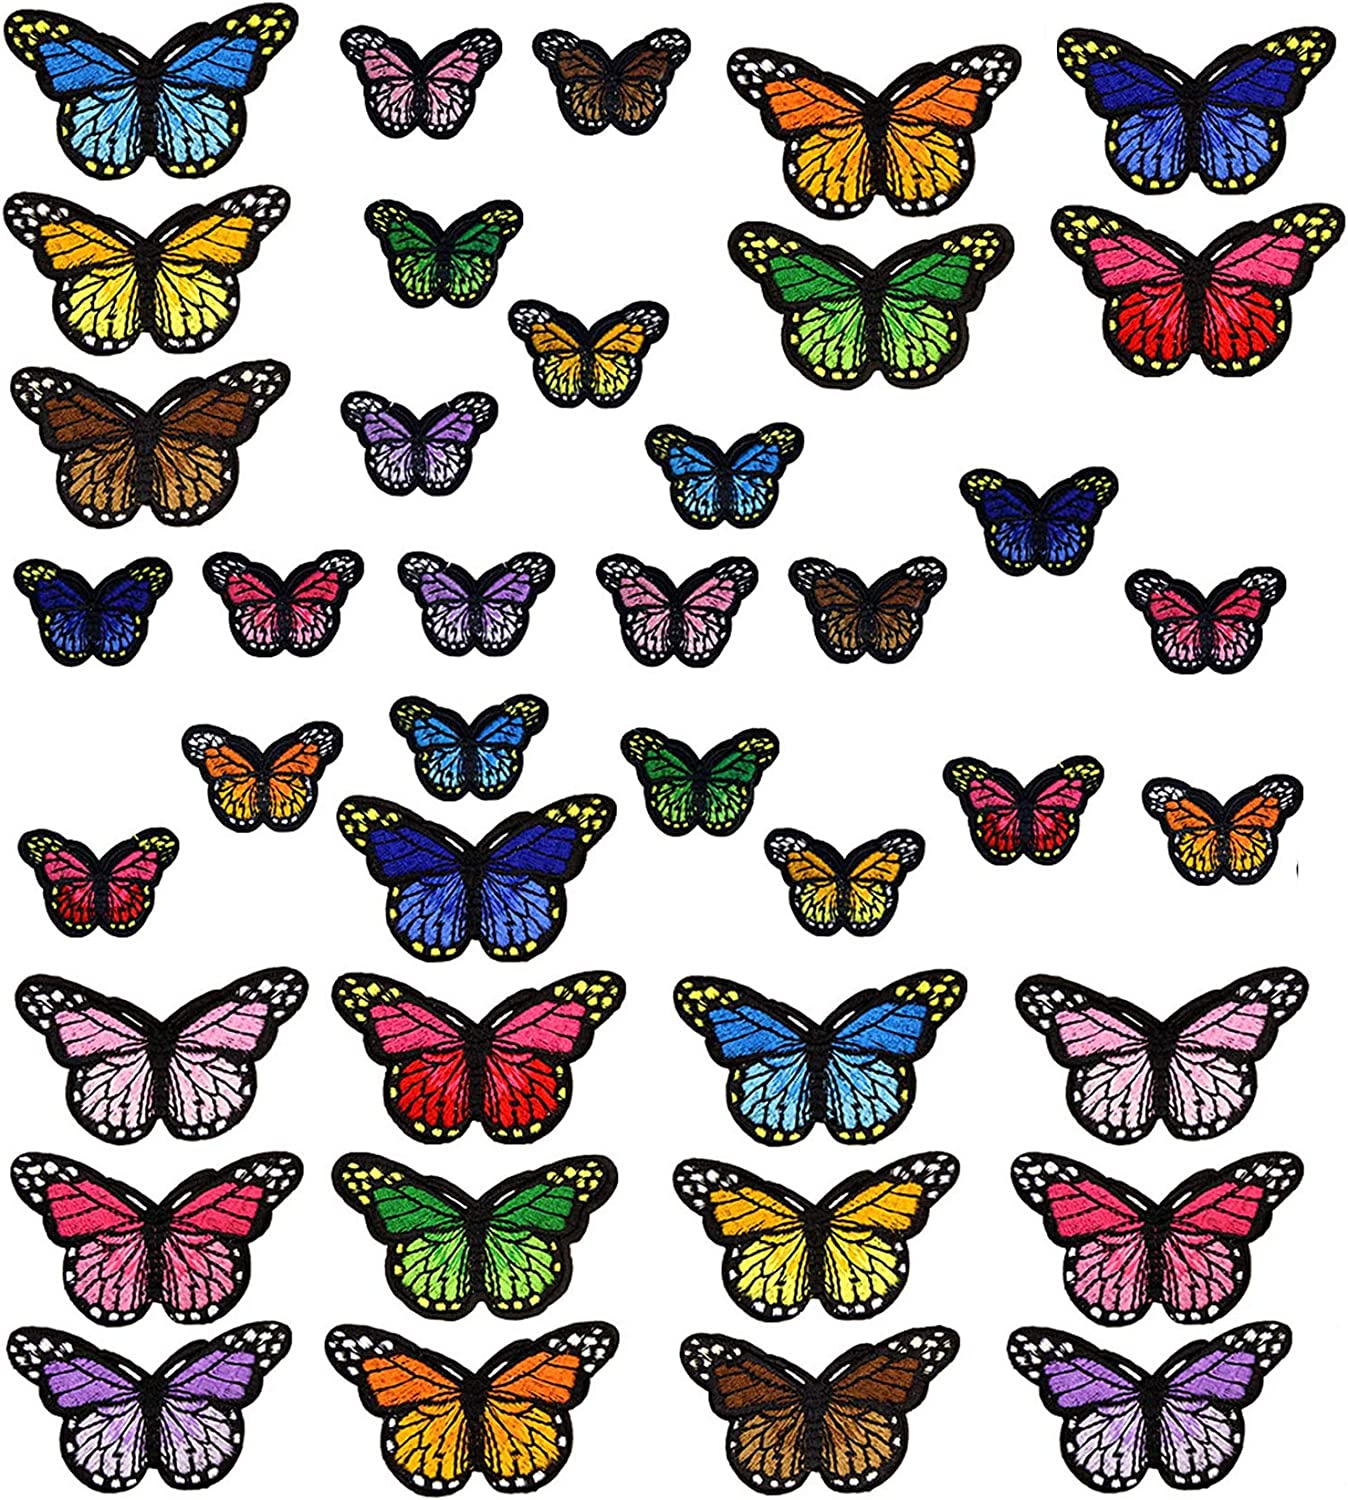 YYaaloa 40pcs Popular standard Butterfly Iron on Patches Award-winning store Embroidered A Size 2 Sew